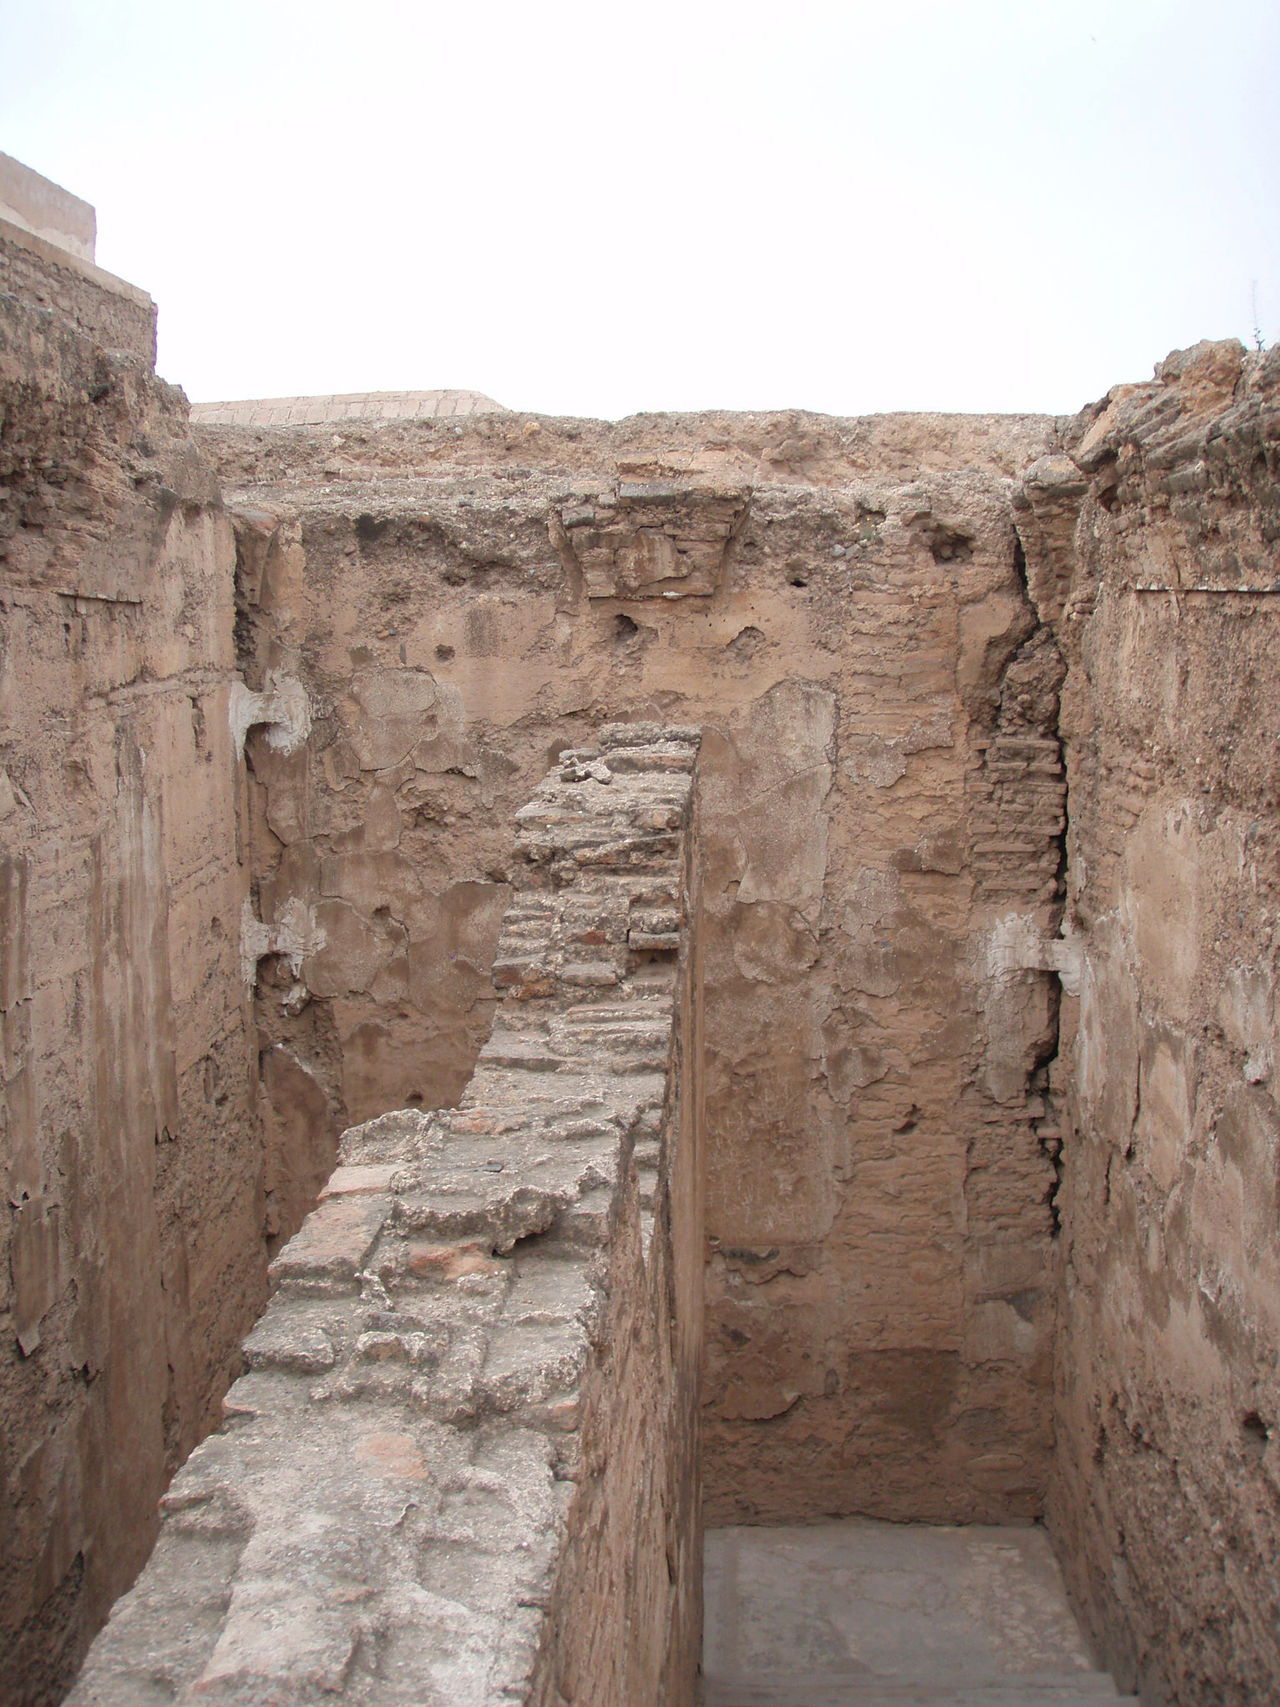 Africa Ancient Architecture Arid Climate Cloudy History Landscape Marrakech Marrakesh Morocco Old Old Ruin Overcast Palace Ruins Sky Stone Wall